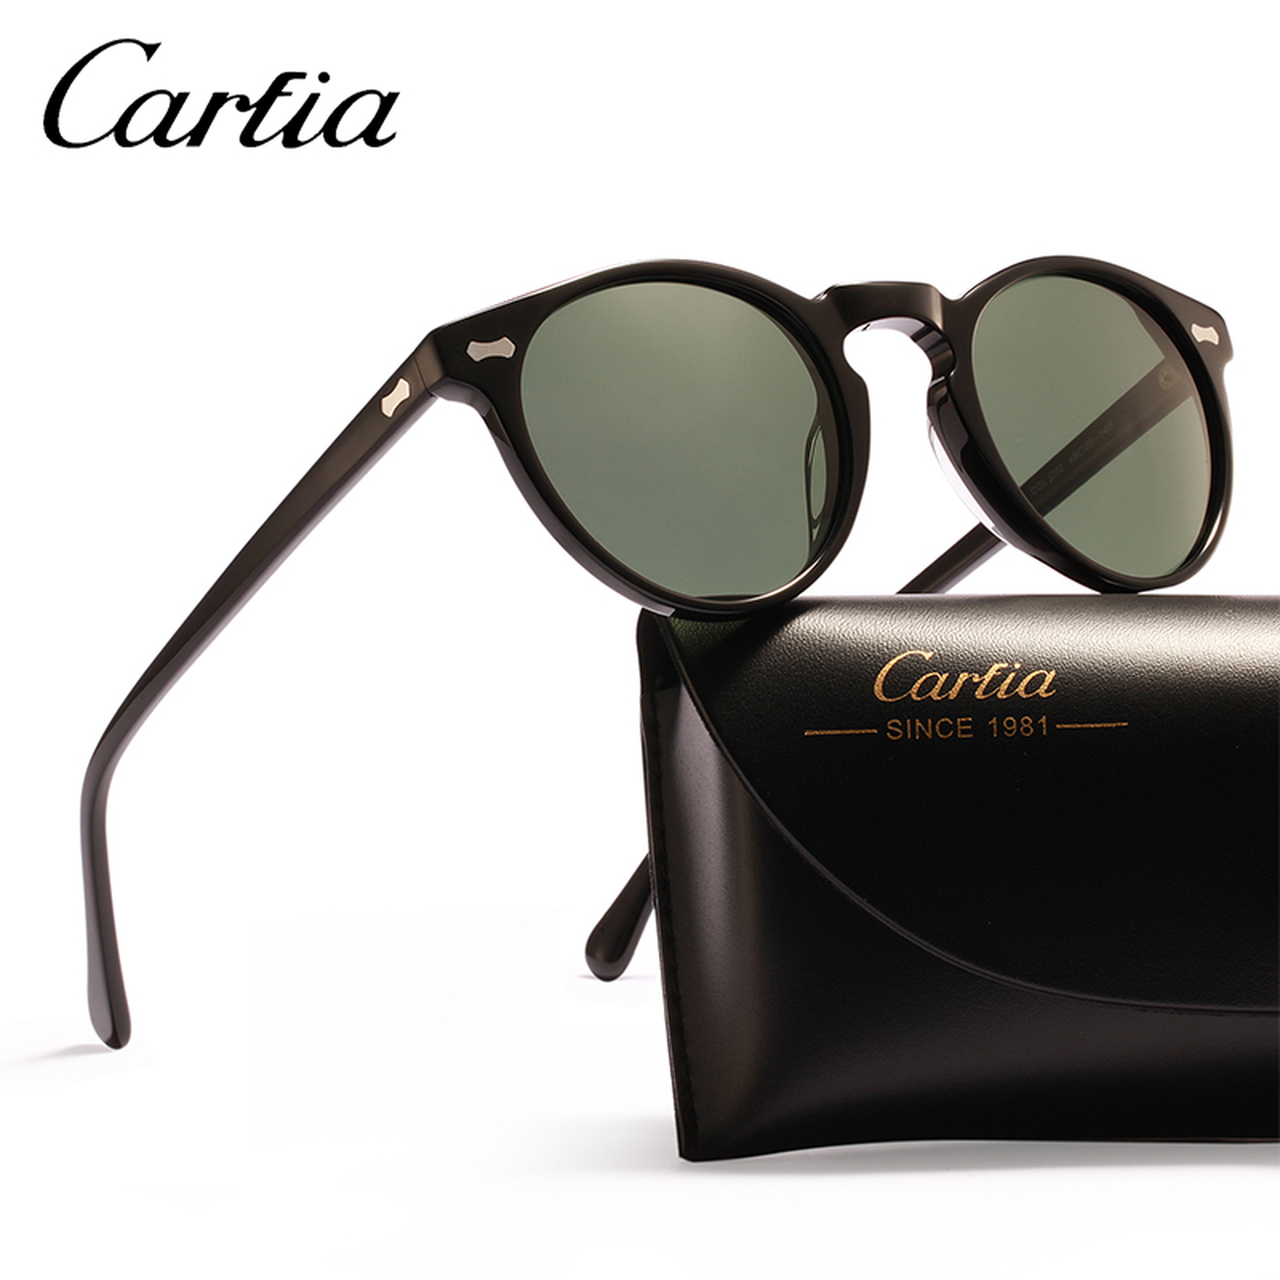 38707c8959 ... Carfia Polarized Sunglasses Classical Brand Designer Gregory Peck  Vintage Sunglasses Men Women Round Sun Glasses 100 ...